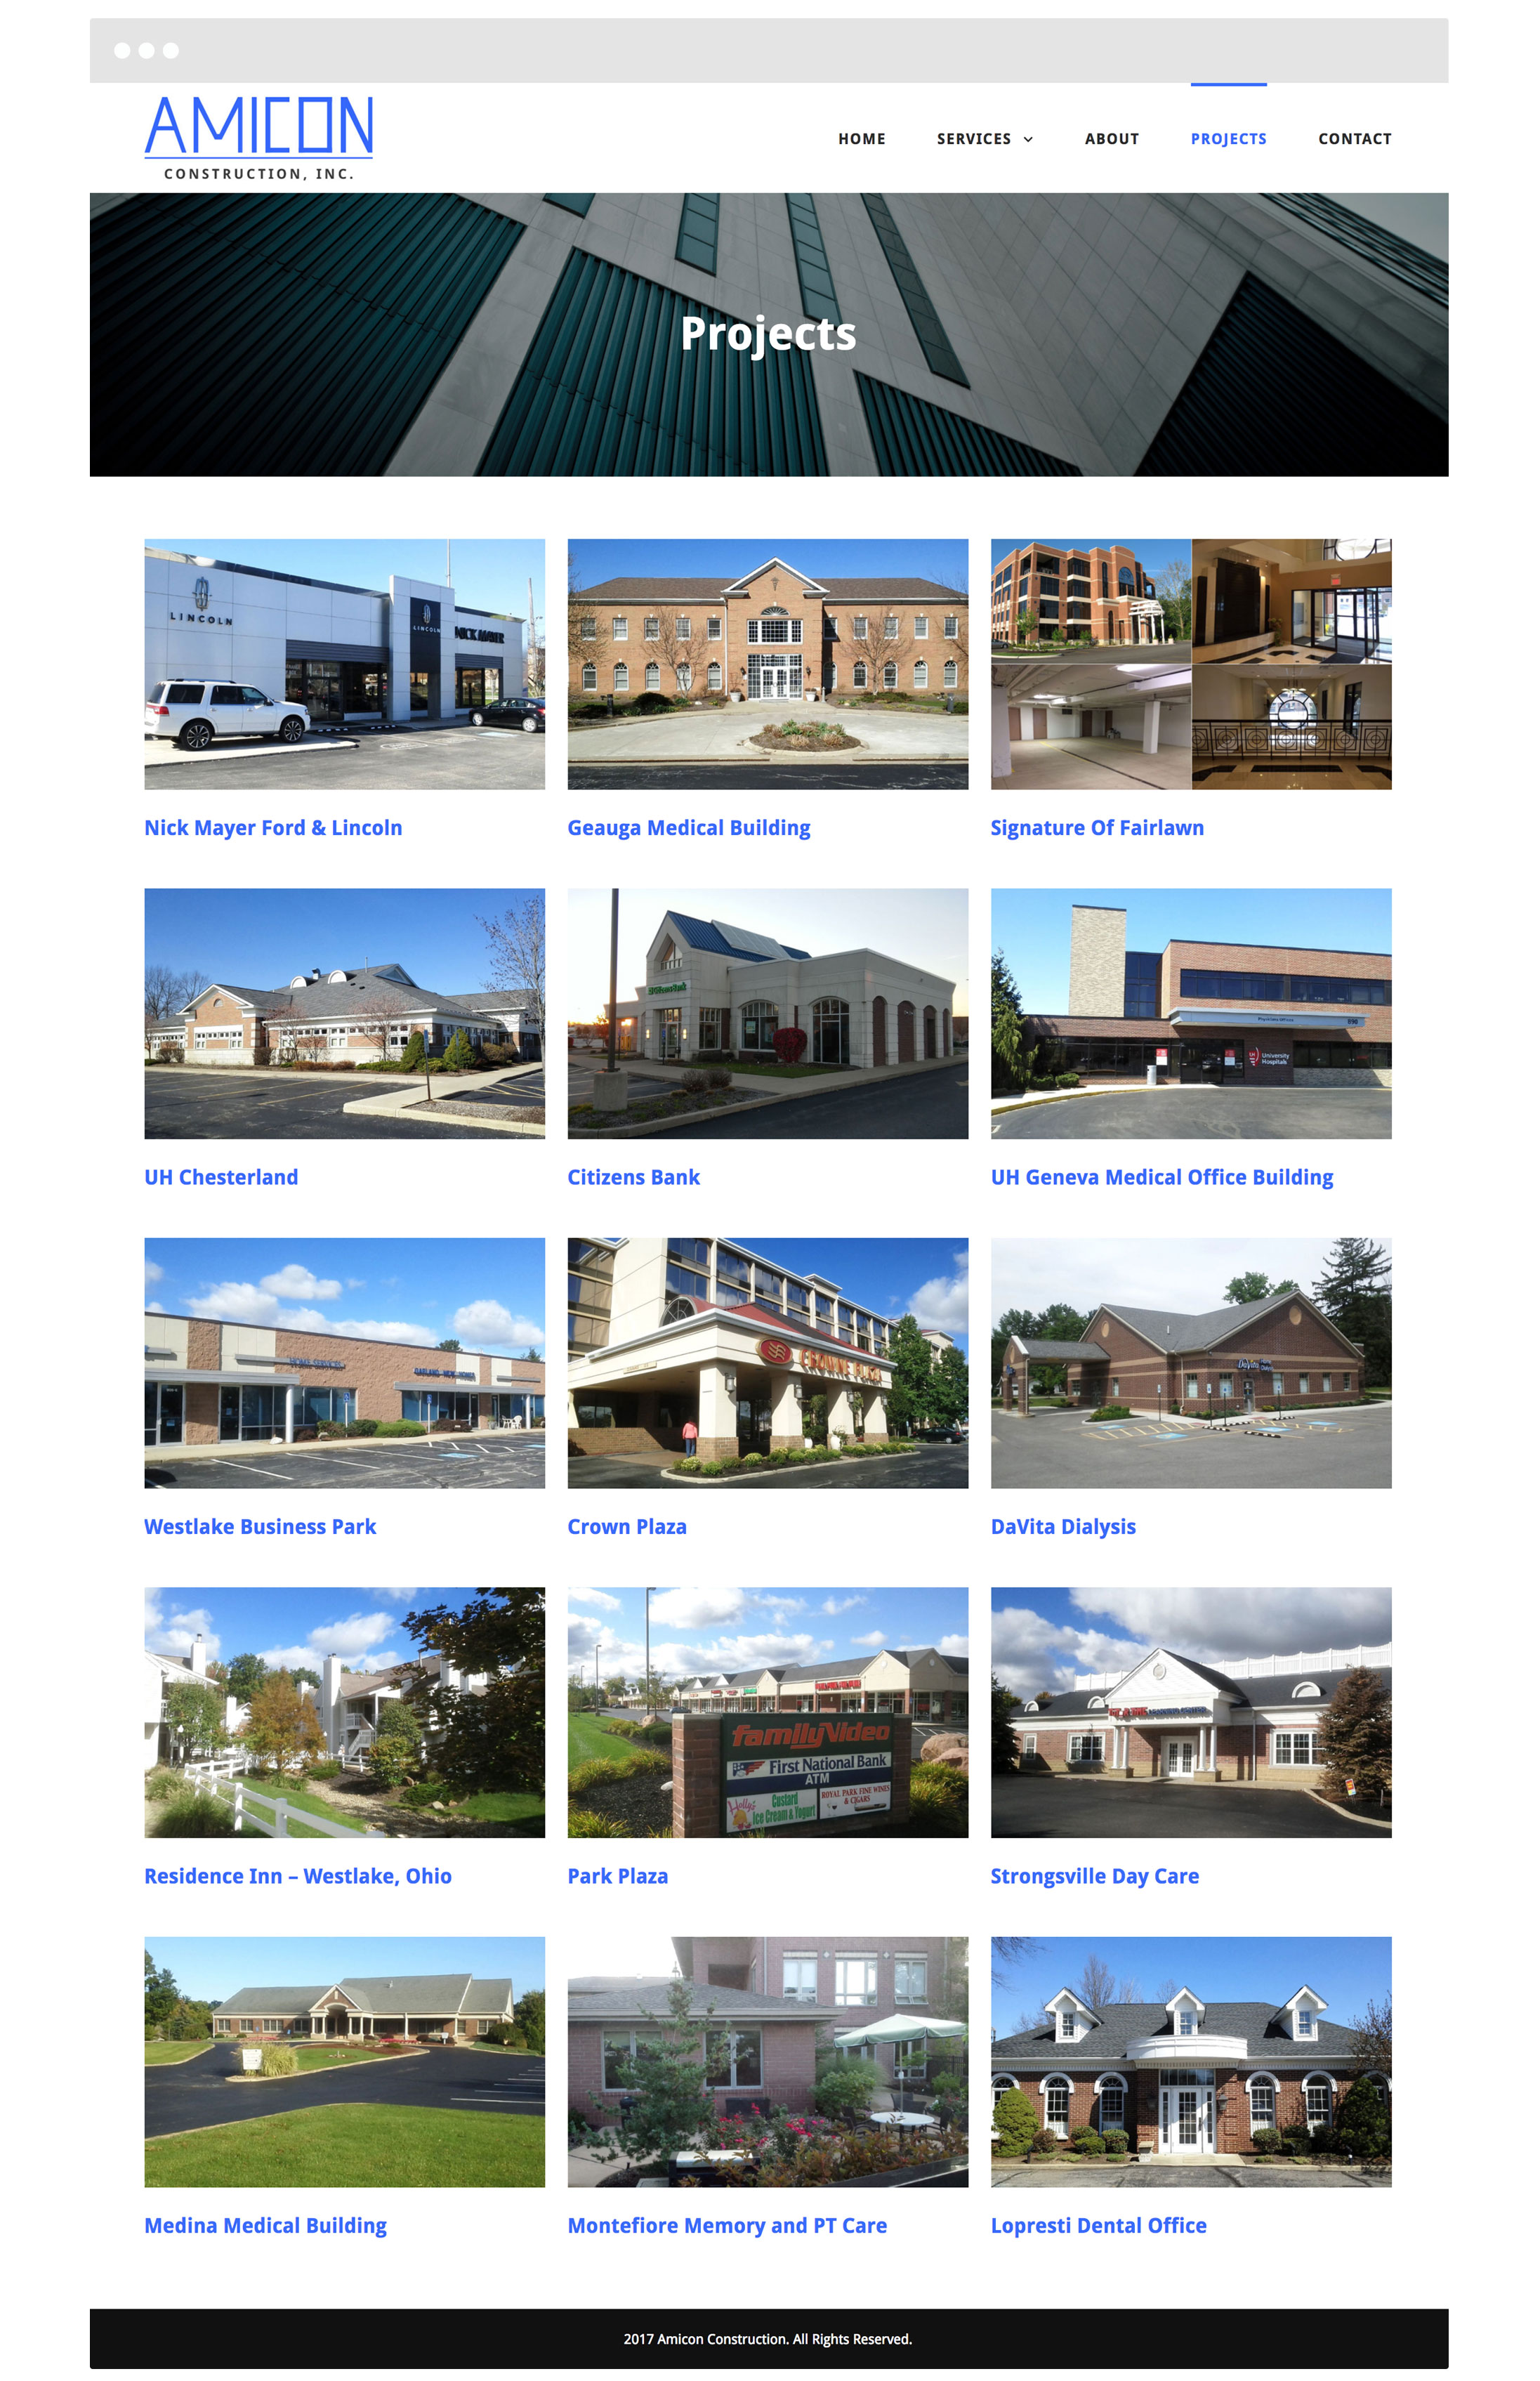 Amicon Construction Cleveland Web Design